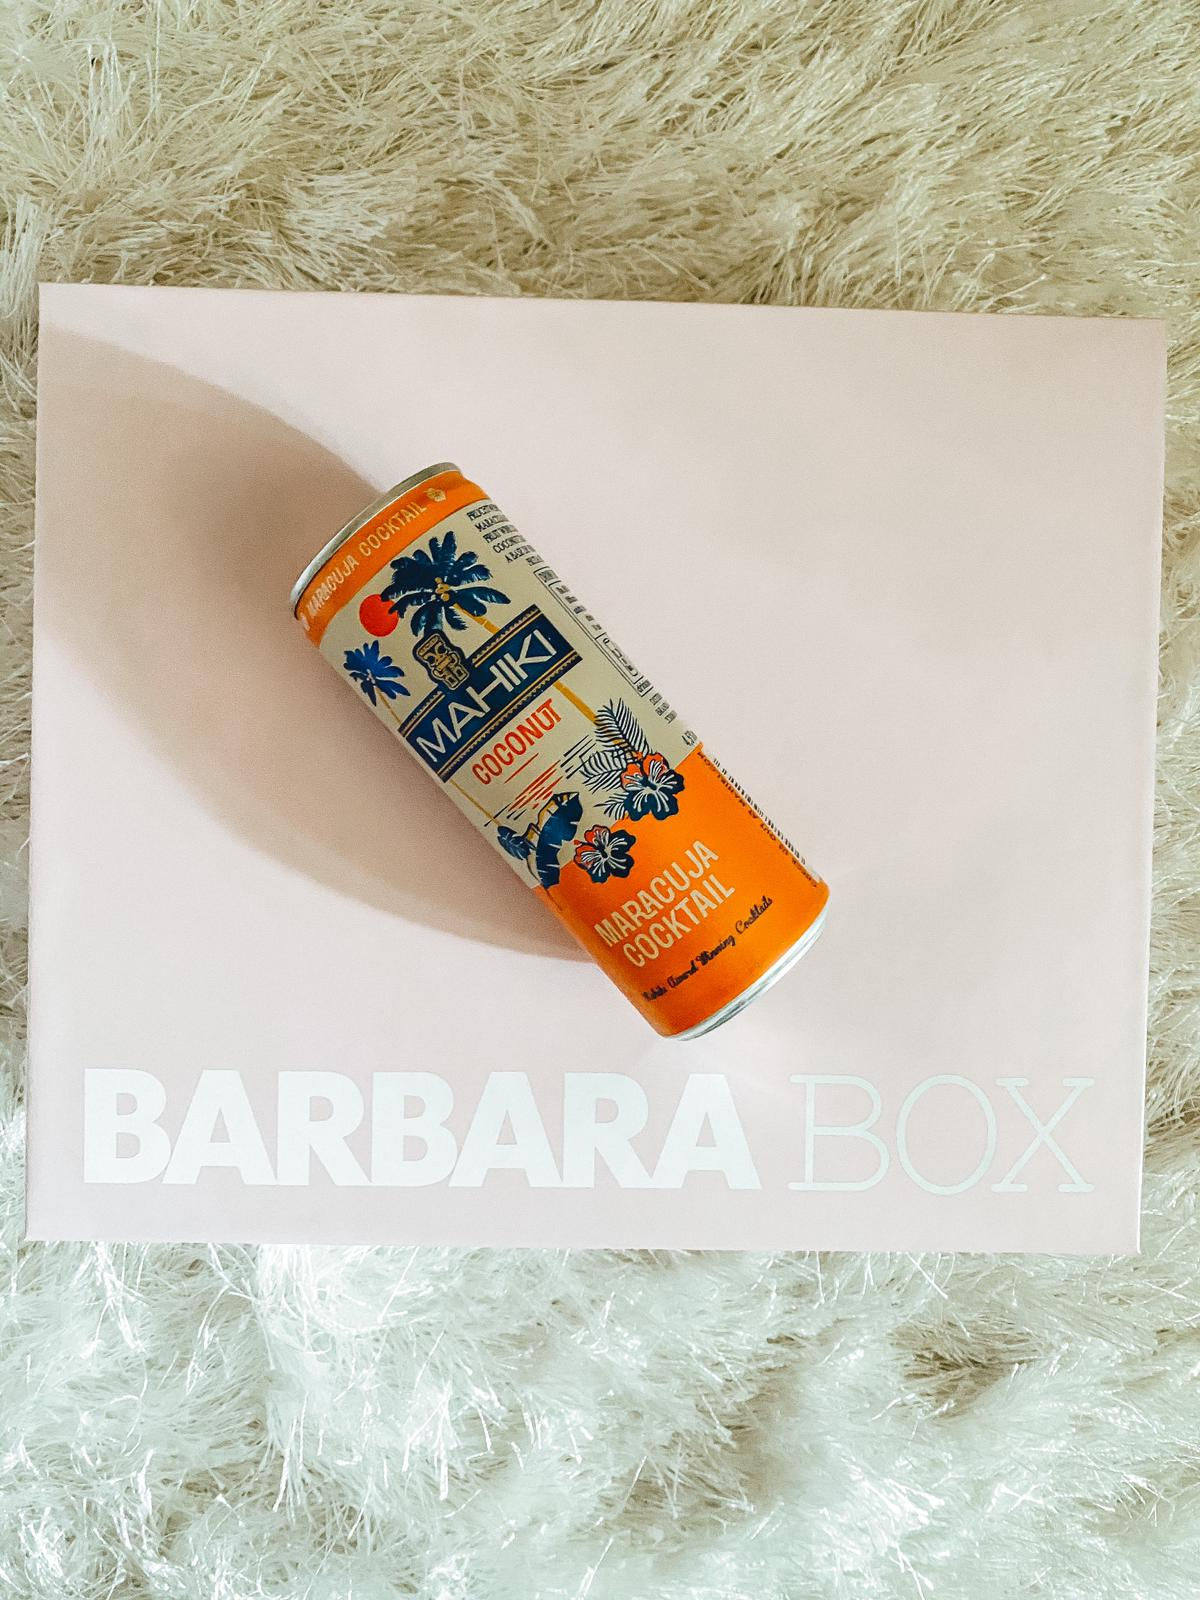 Barbara Box Summer Power - Mahiki Cocktail